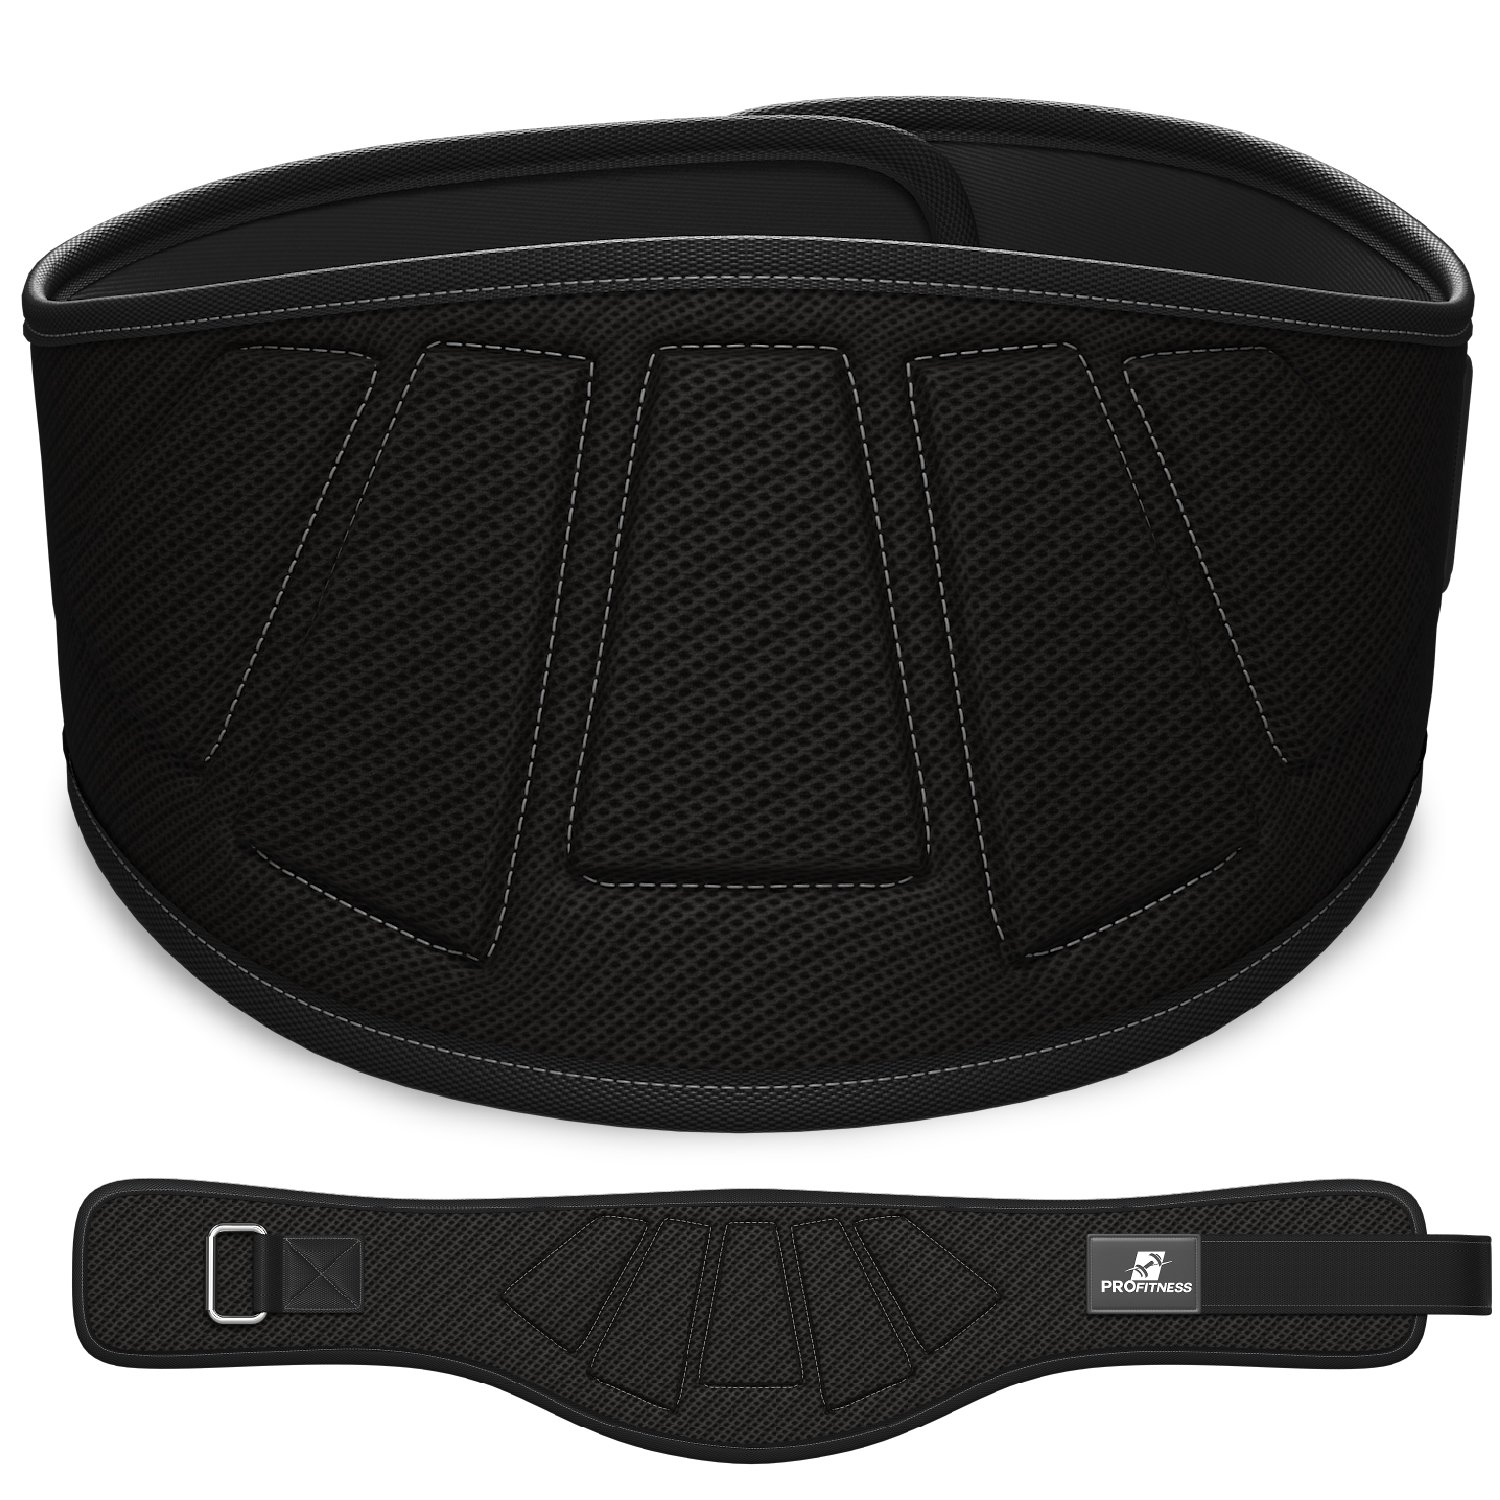 ProFitness Weightlifting Belt 6-Inch-Wide Proper Weight Lifting Form Unisex Back Support for Cross Training Exercises, Powerlifting Workouts